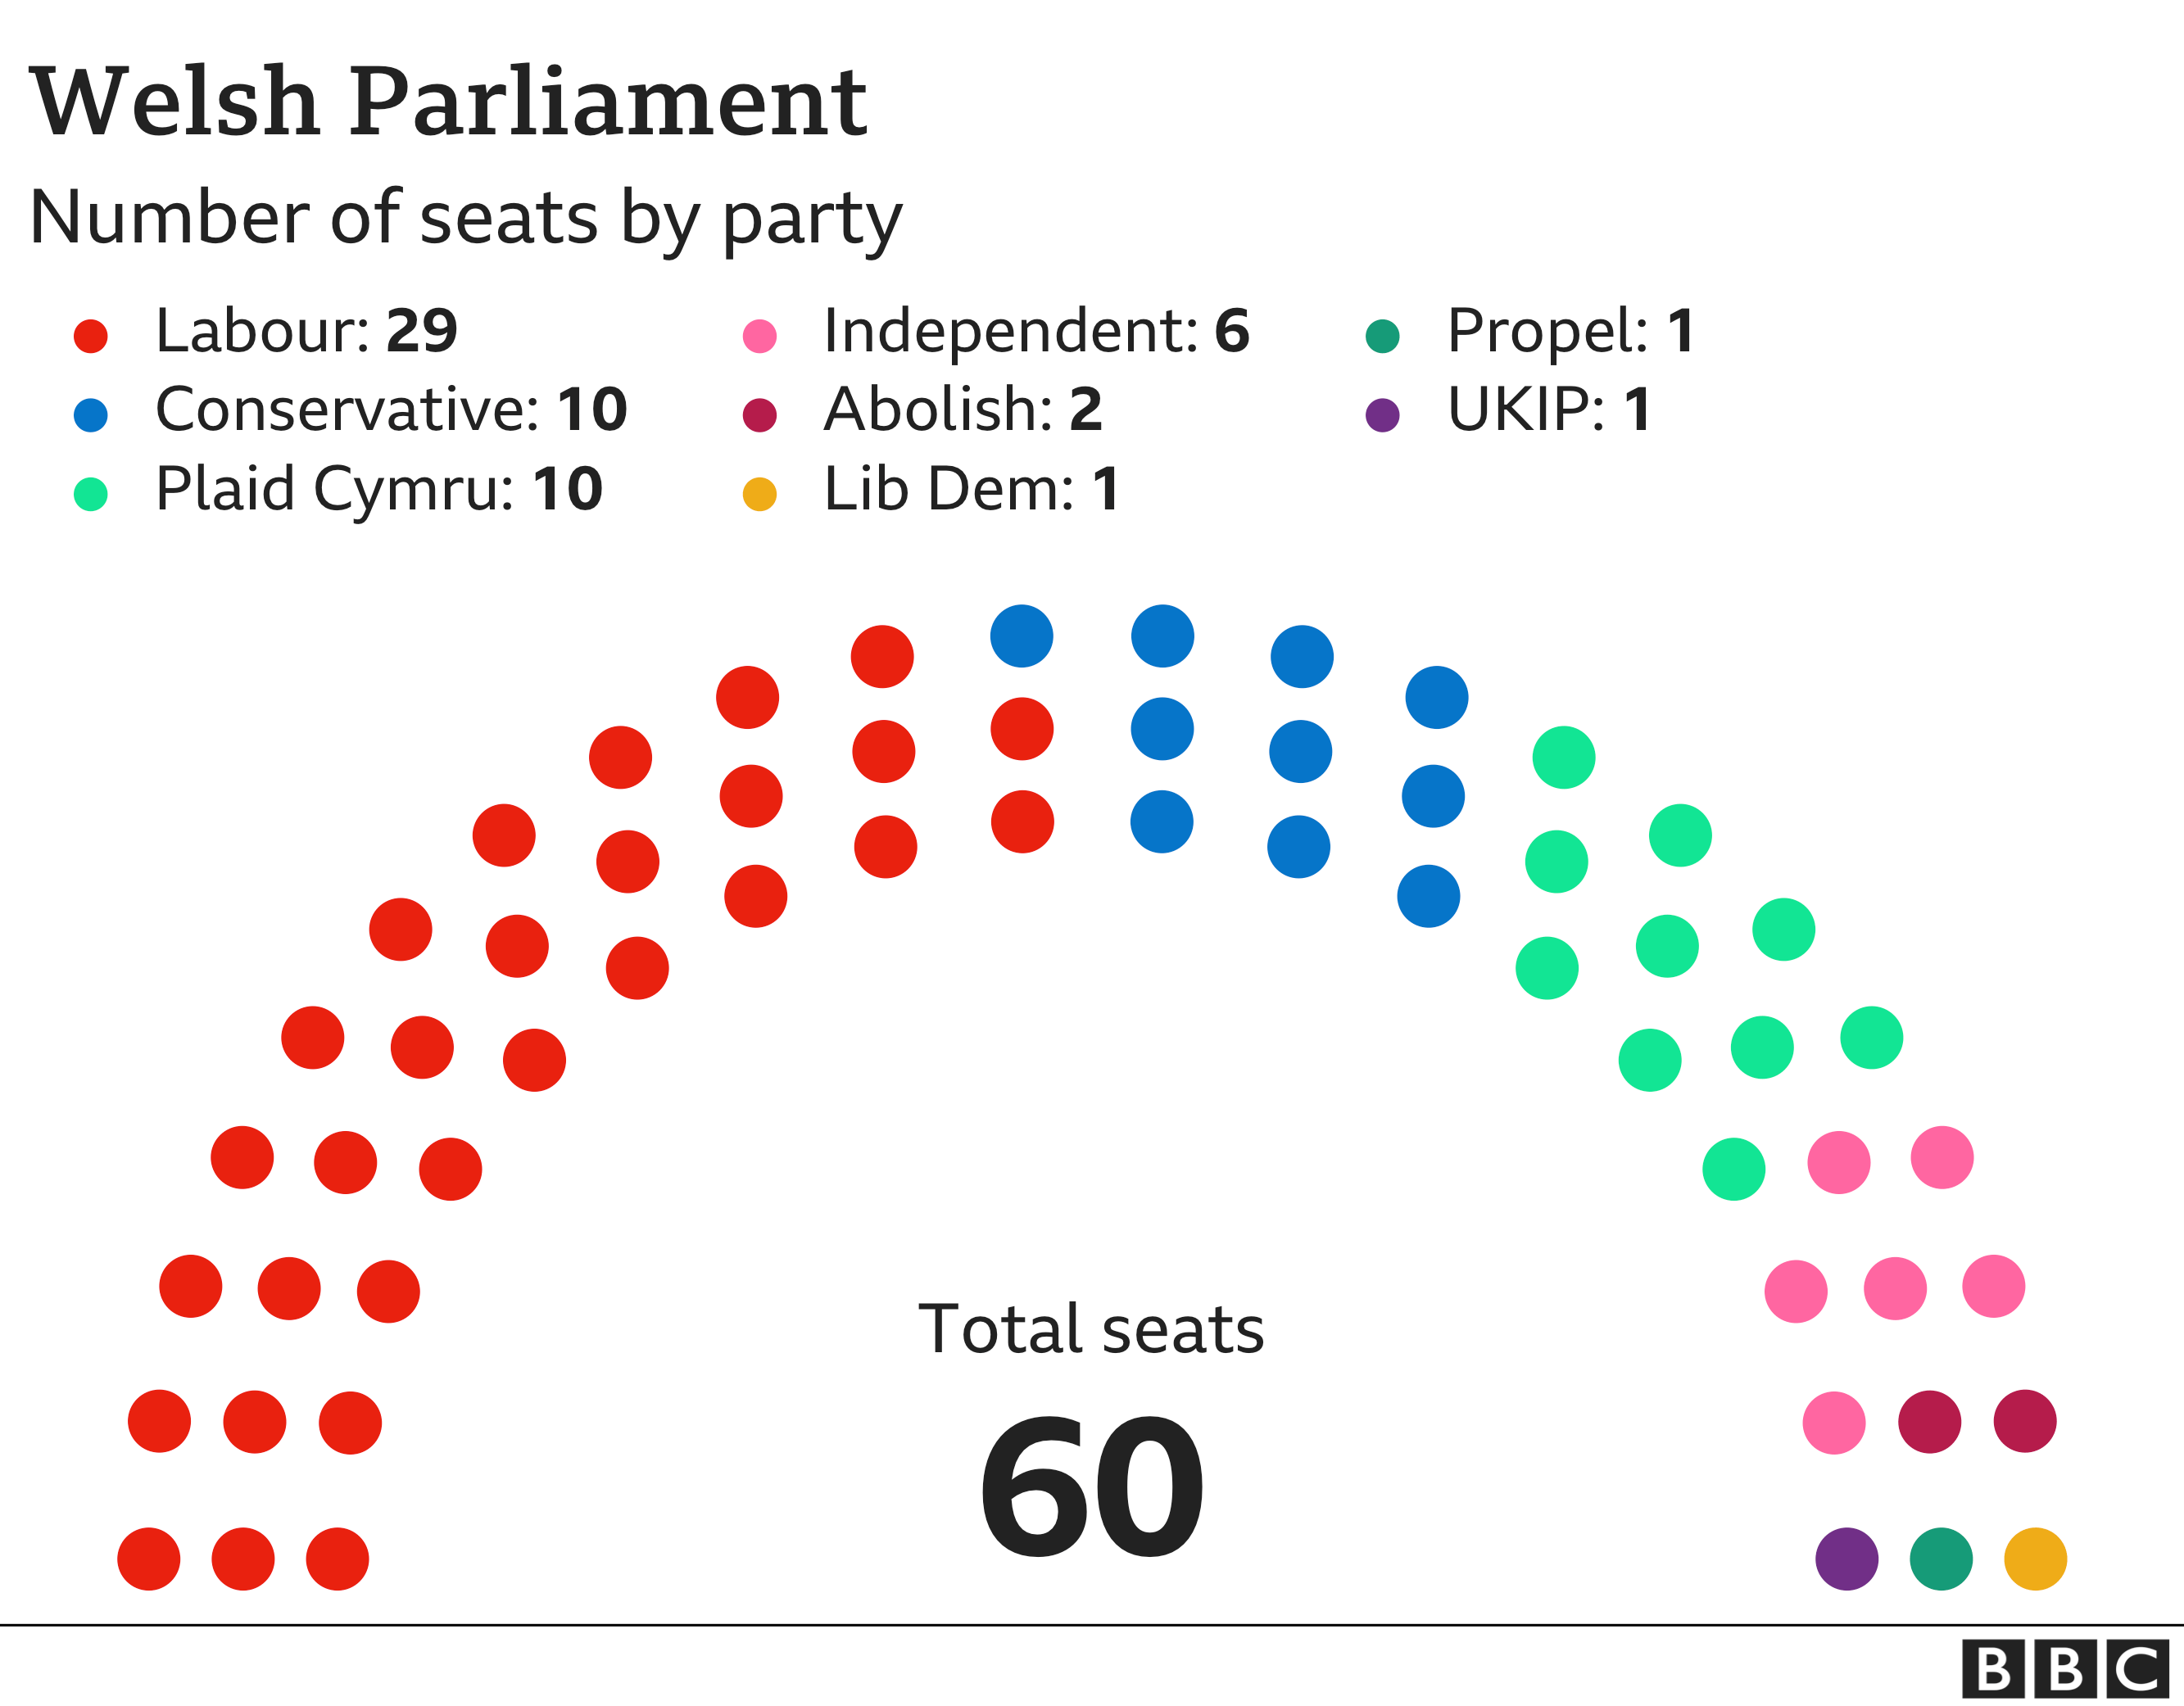 Diagram showing the number of seats by party